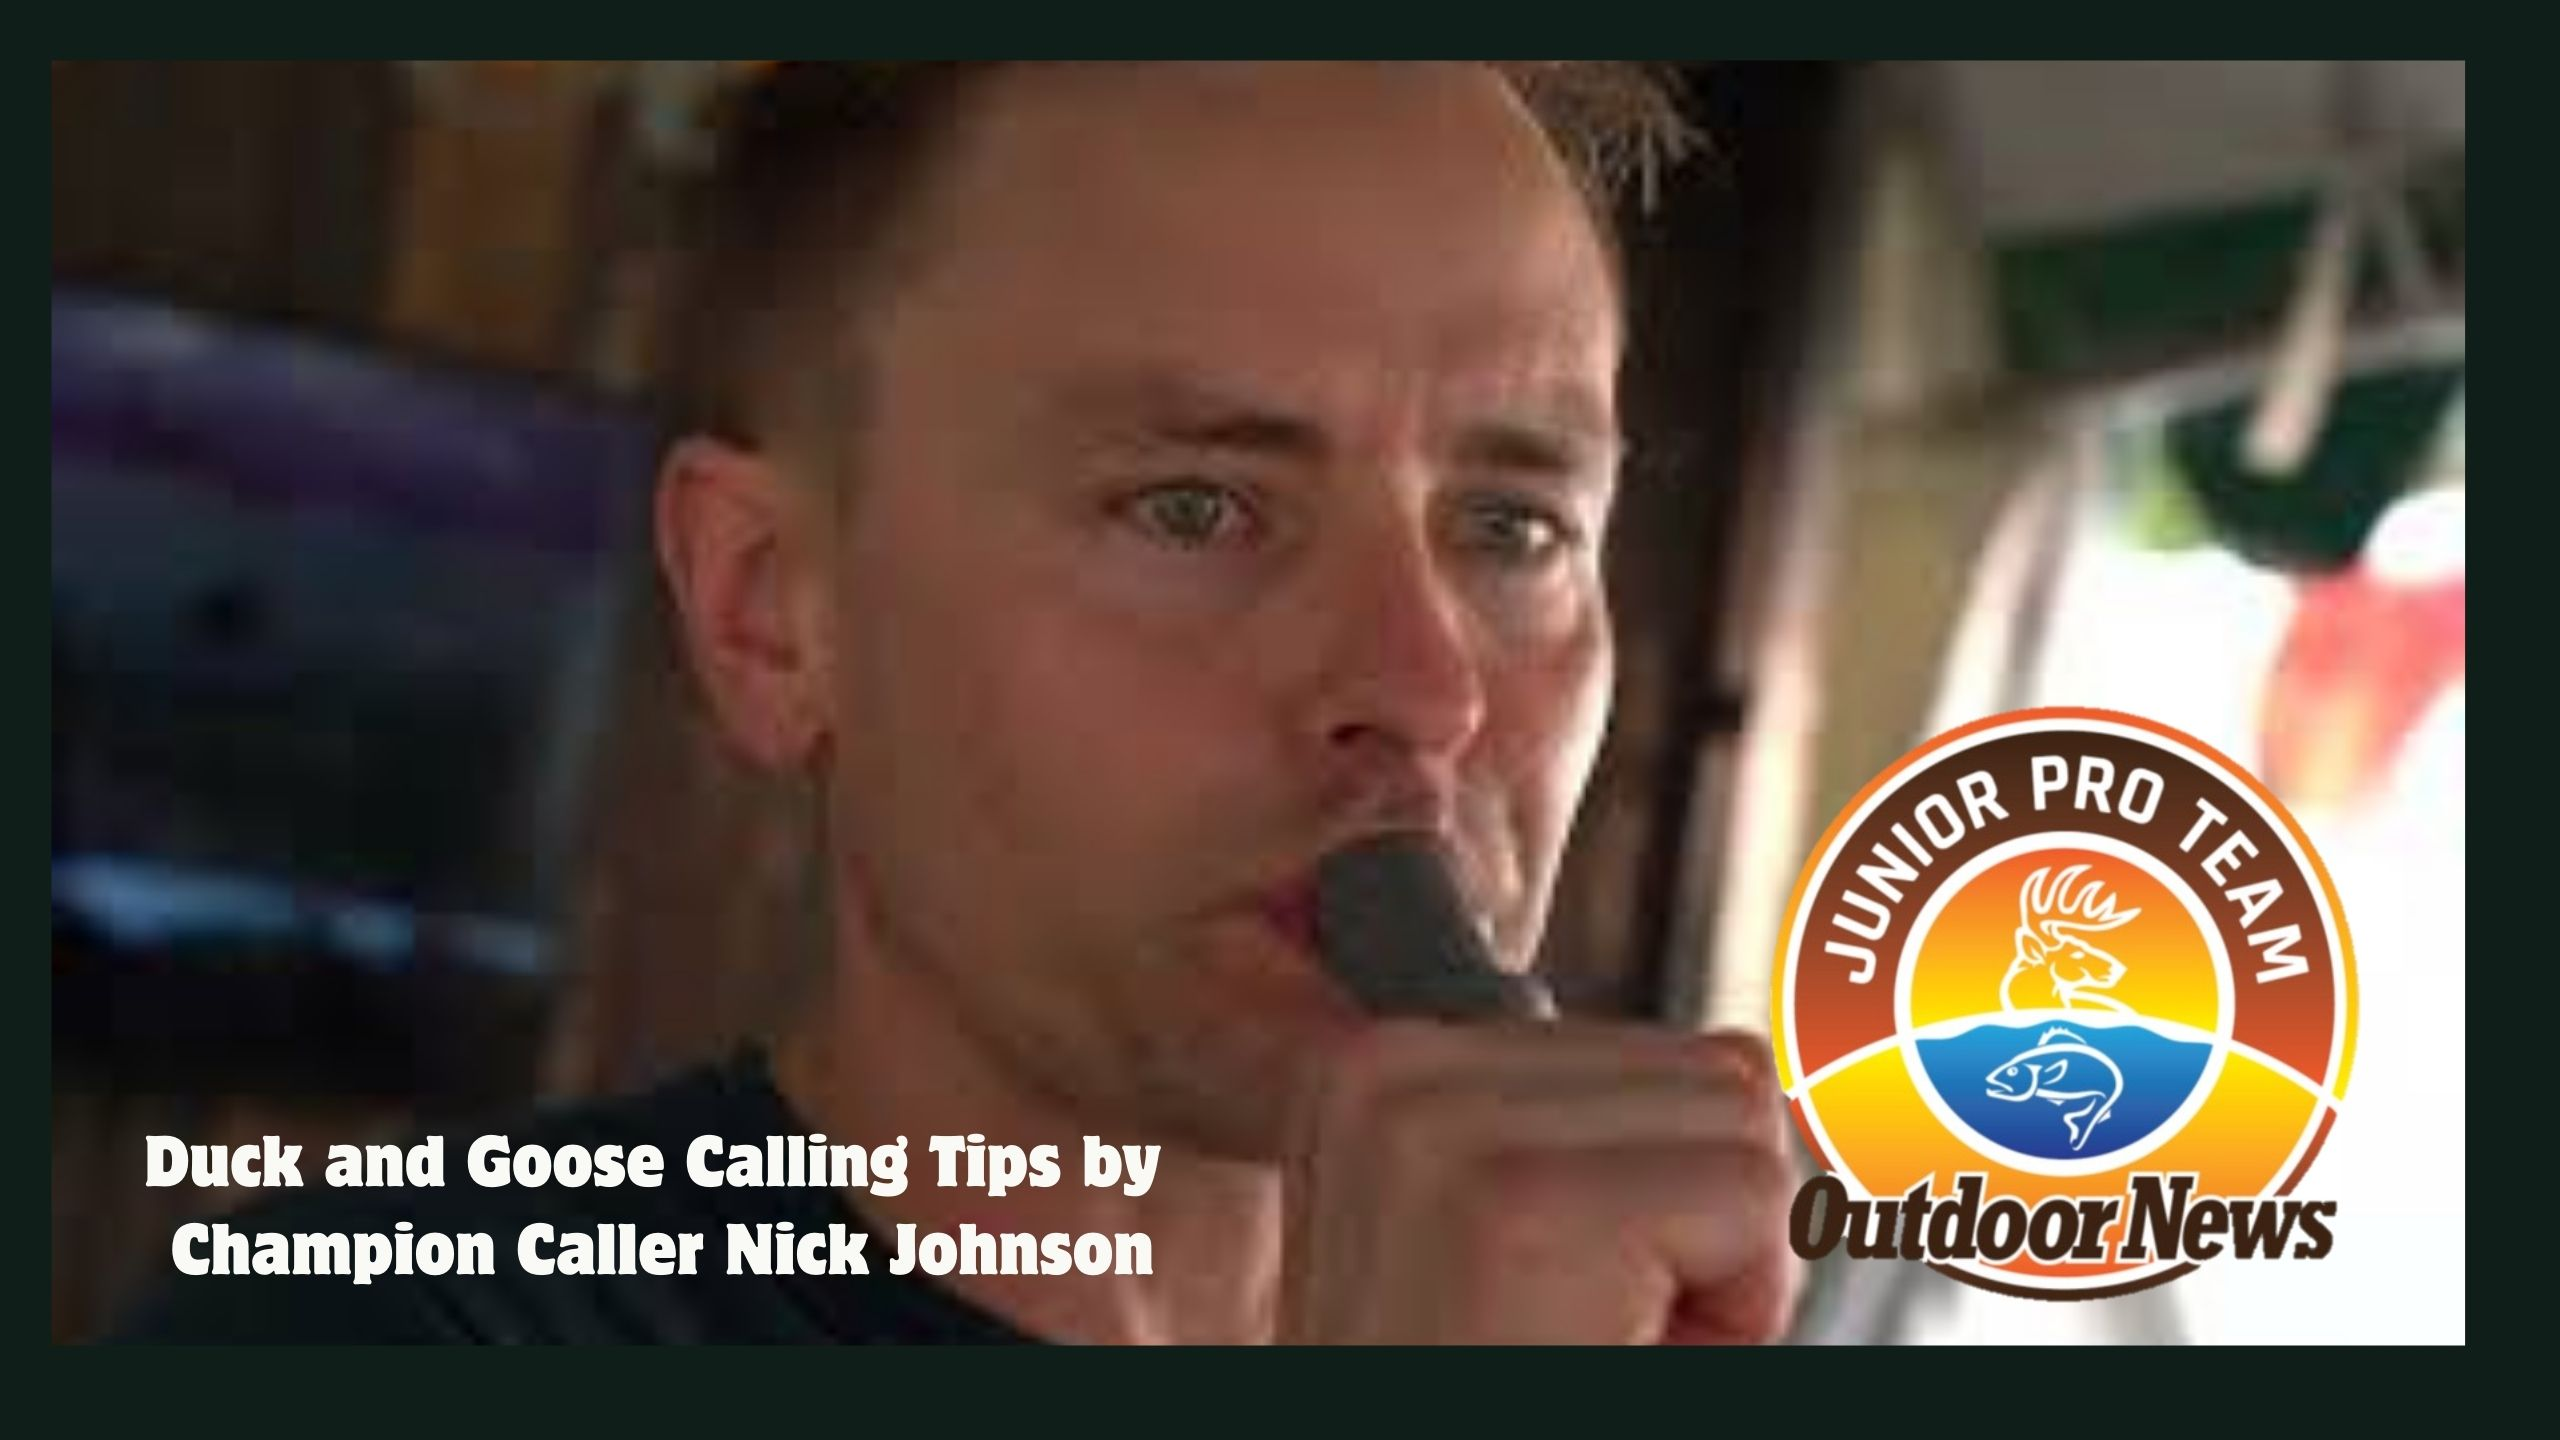 Nick Johnson Champion Caller Shows JPT members how to choose and use a duck or goose call in this virtual mentor video